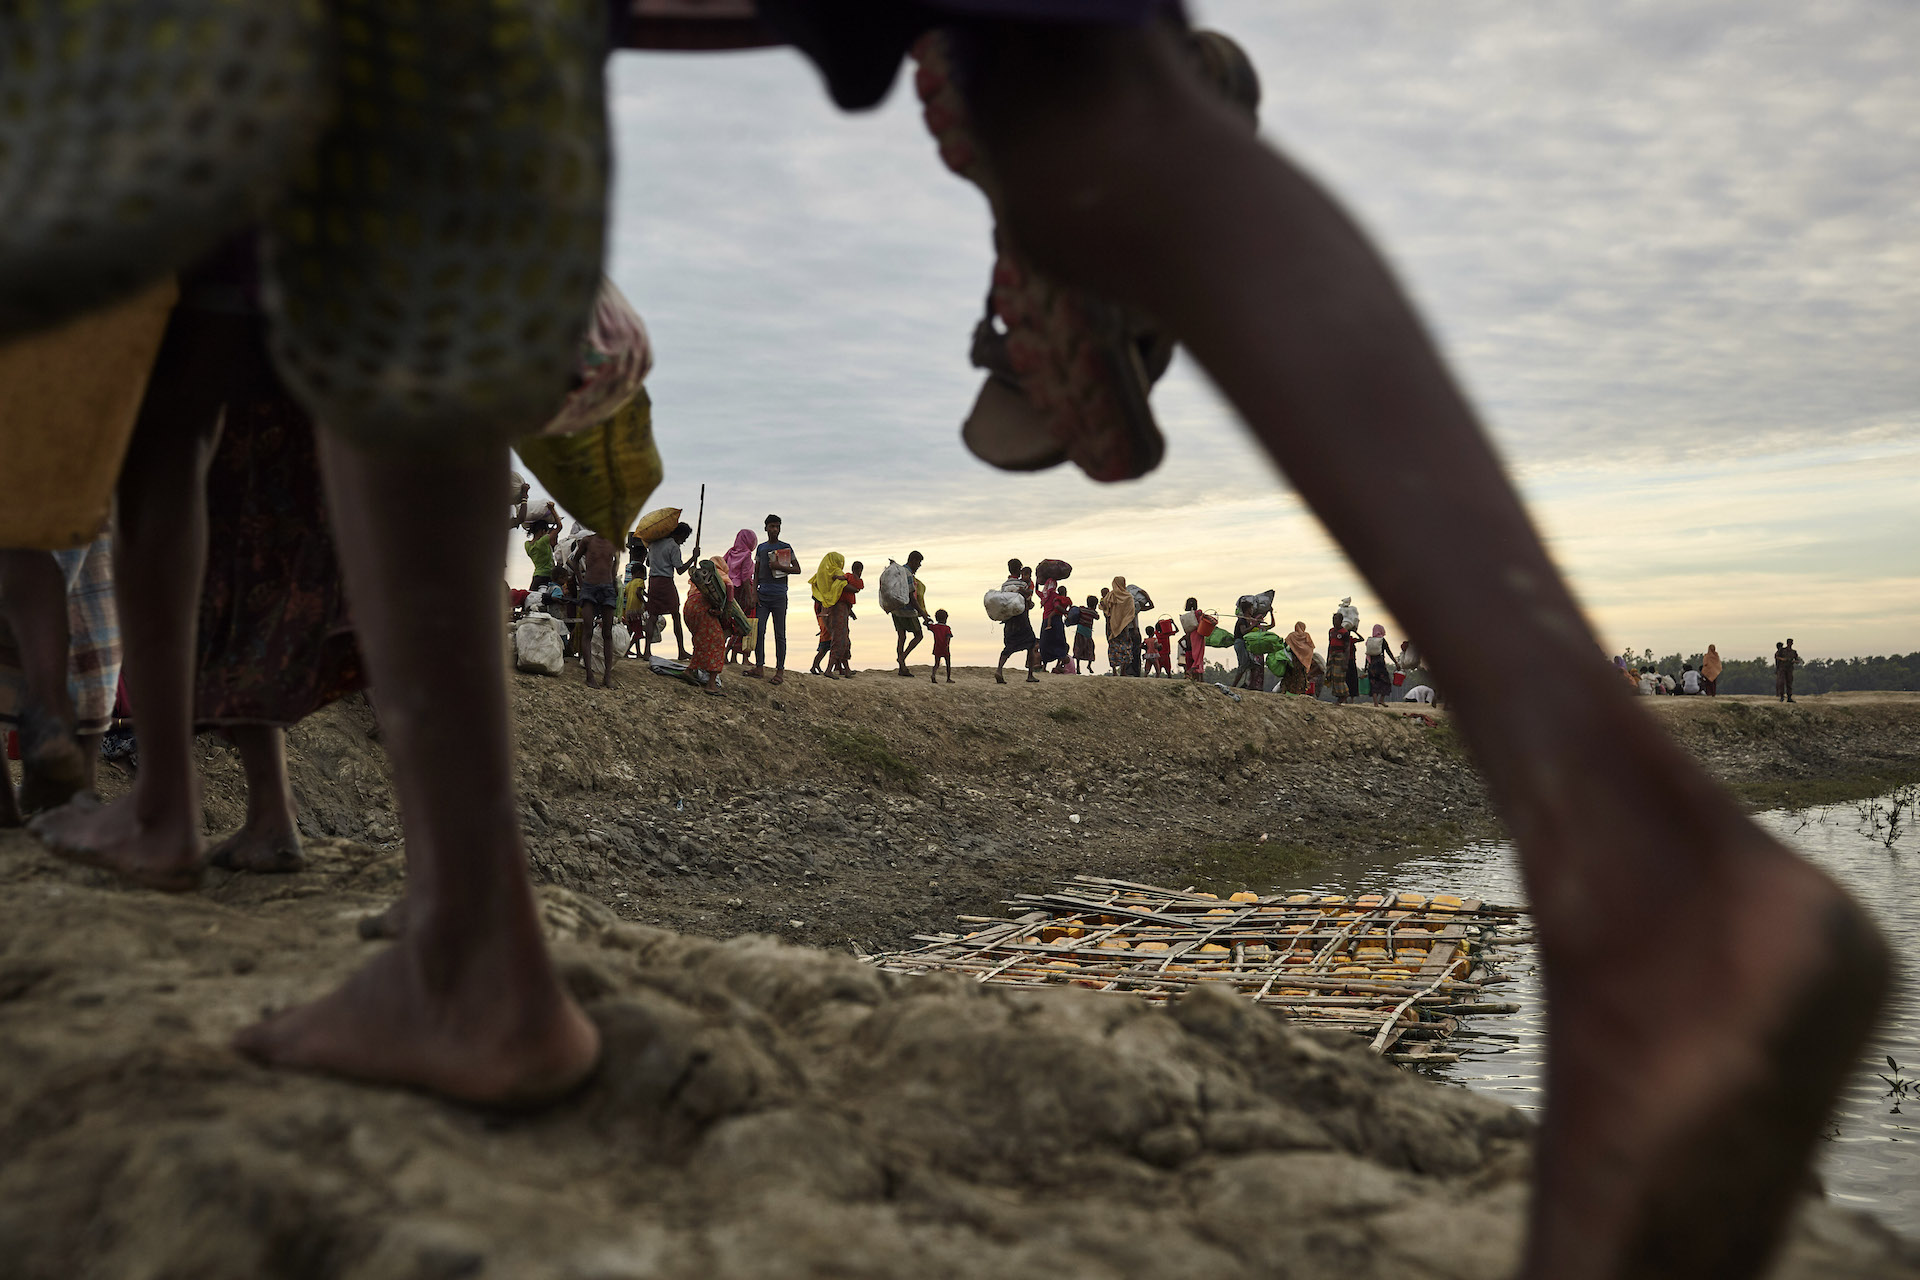 Rohingya refugees walk on an embankment of the Naf River